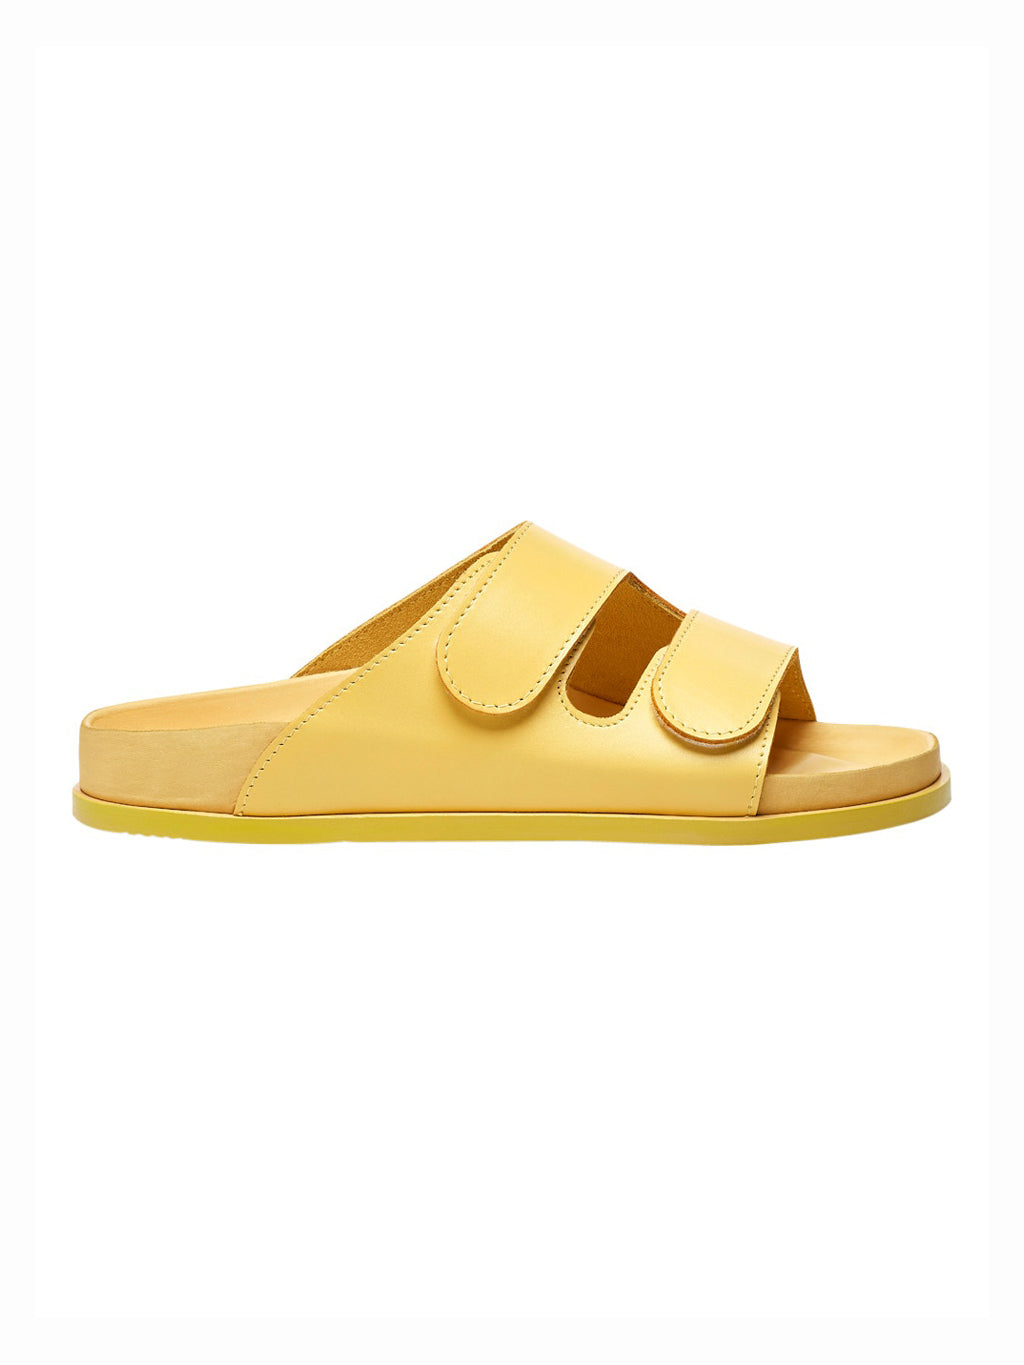 Lemon Drop Birkenstock x Toogood The Forager Sandals